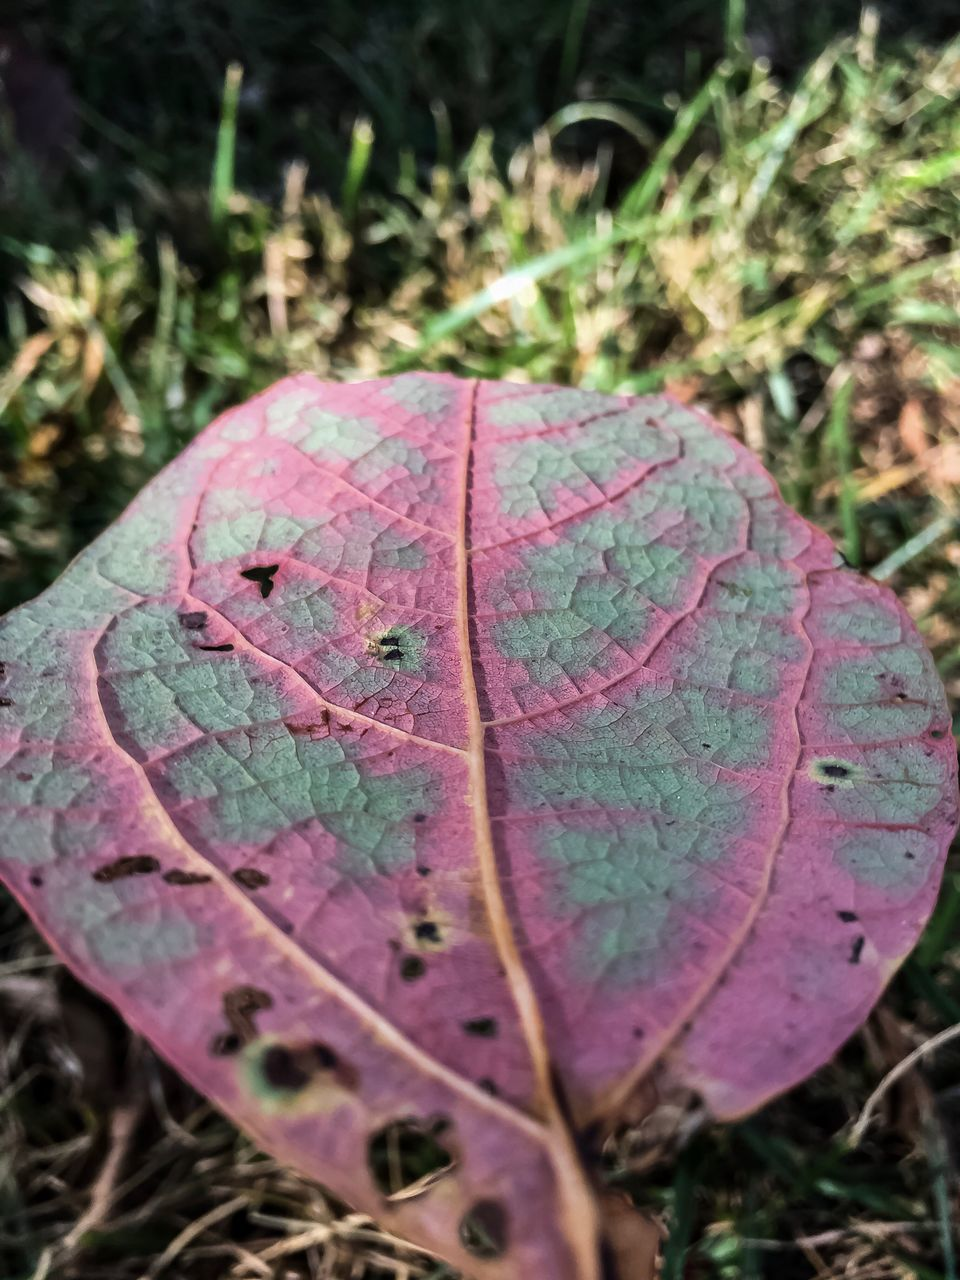 leaf, nature, day, outdoors, dry, autumn, close-up, no people, beauty in nature, change, growth, fragility, grass, maple, freshness